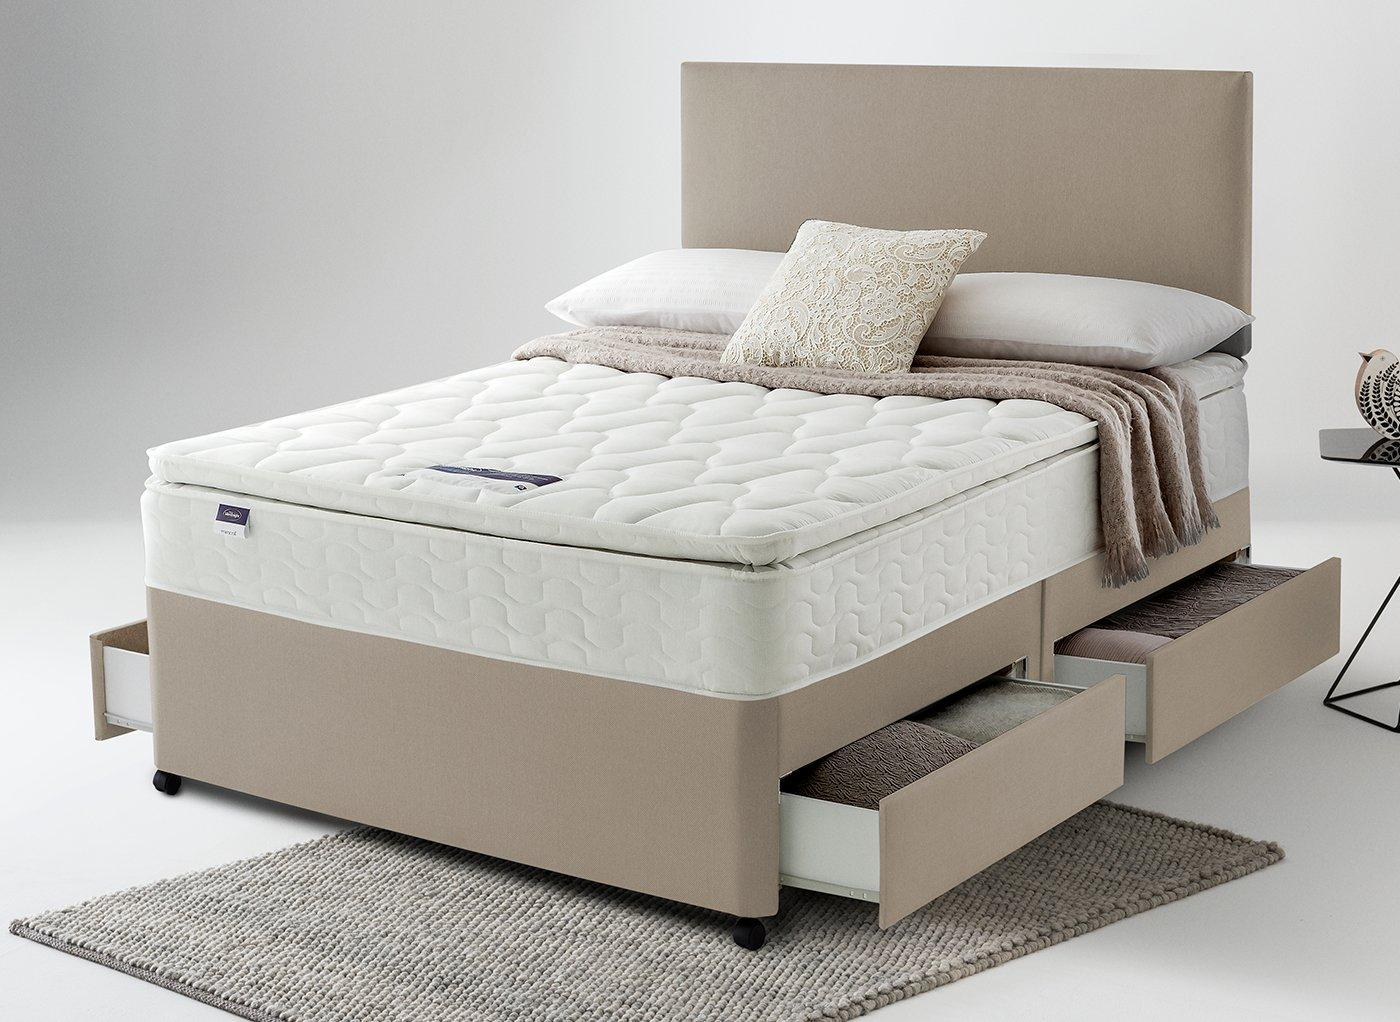 Silentnight Chesham 4'0 Mattress 4'0 Small double